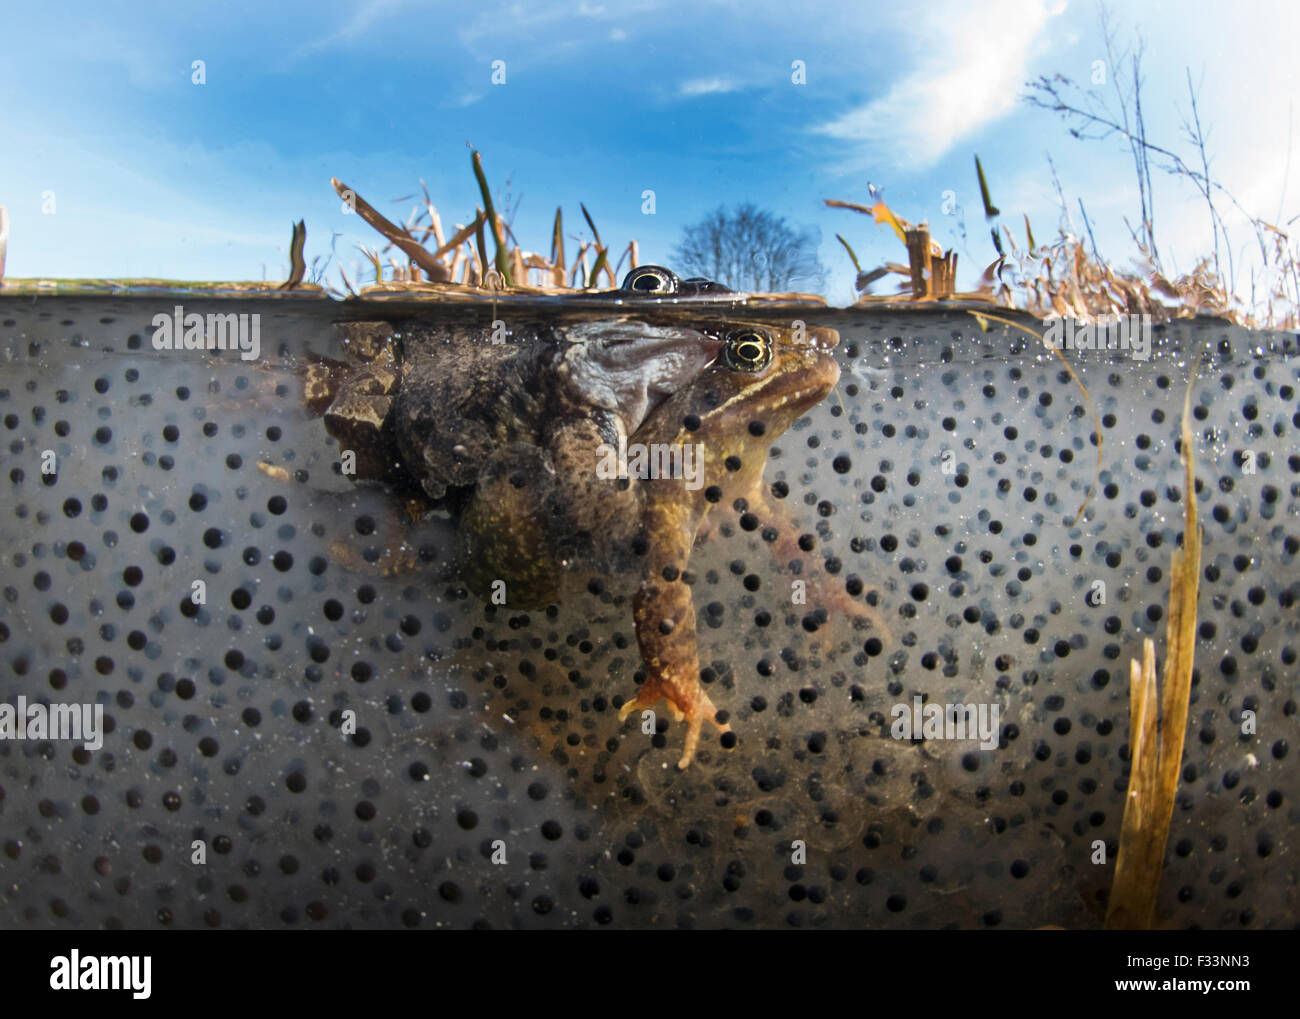 Common Frogs Rana temporary in amplexus (mating) among spawn in pond  North Norfolk March - Stock Image